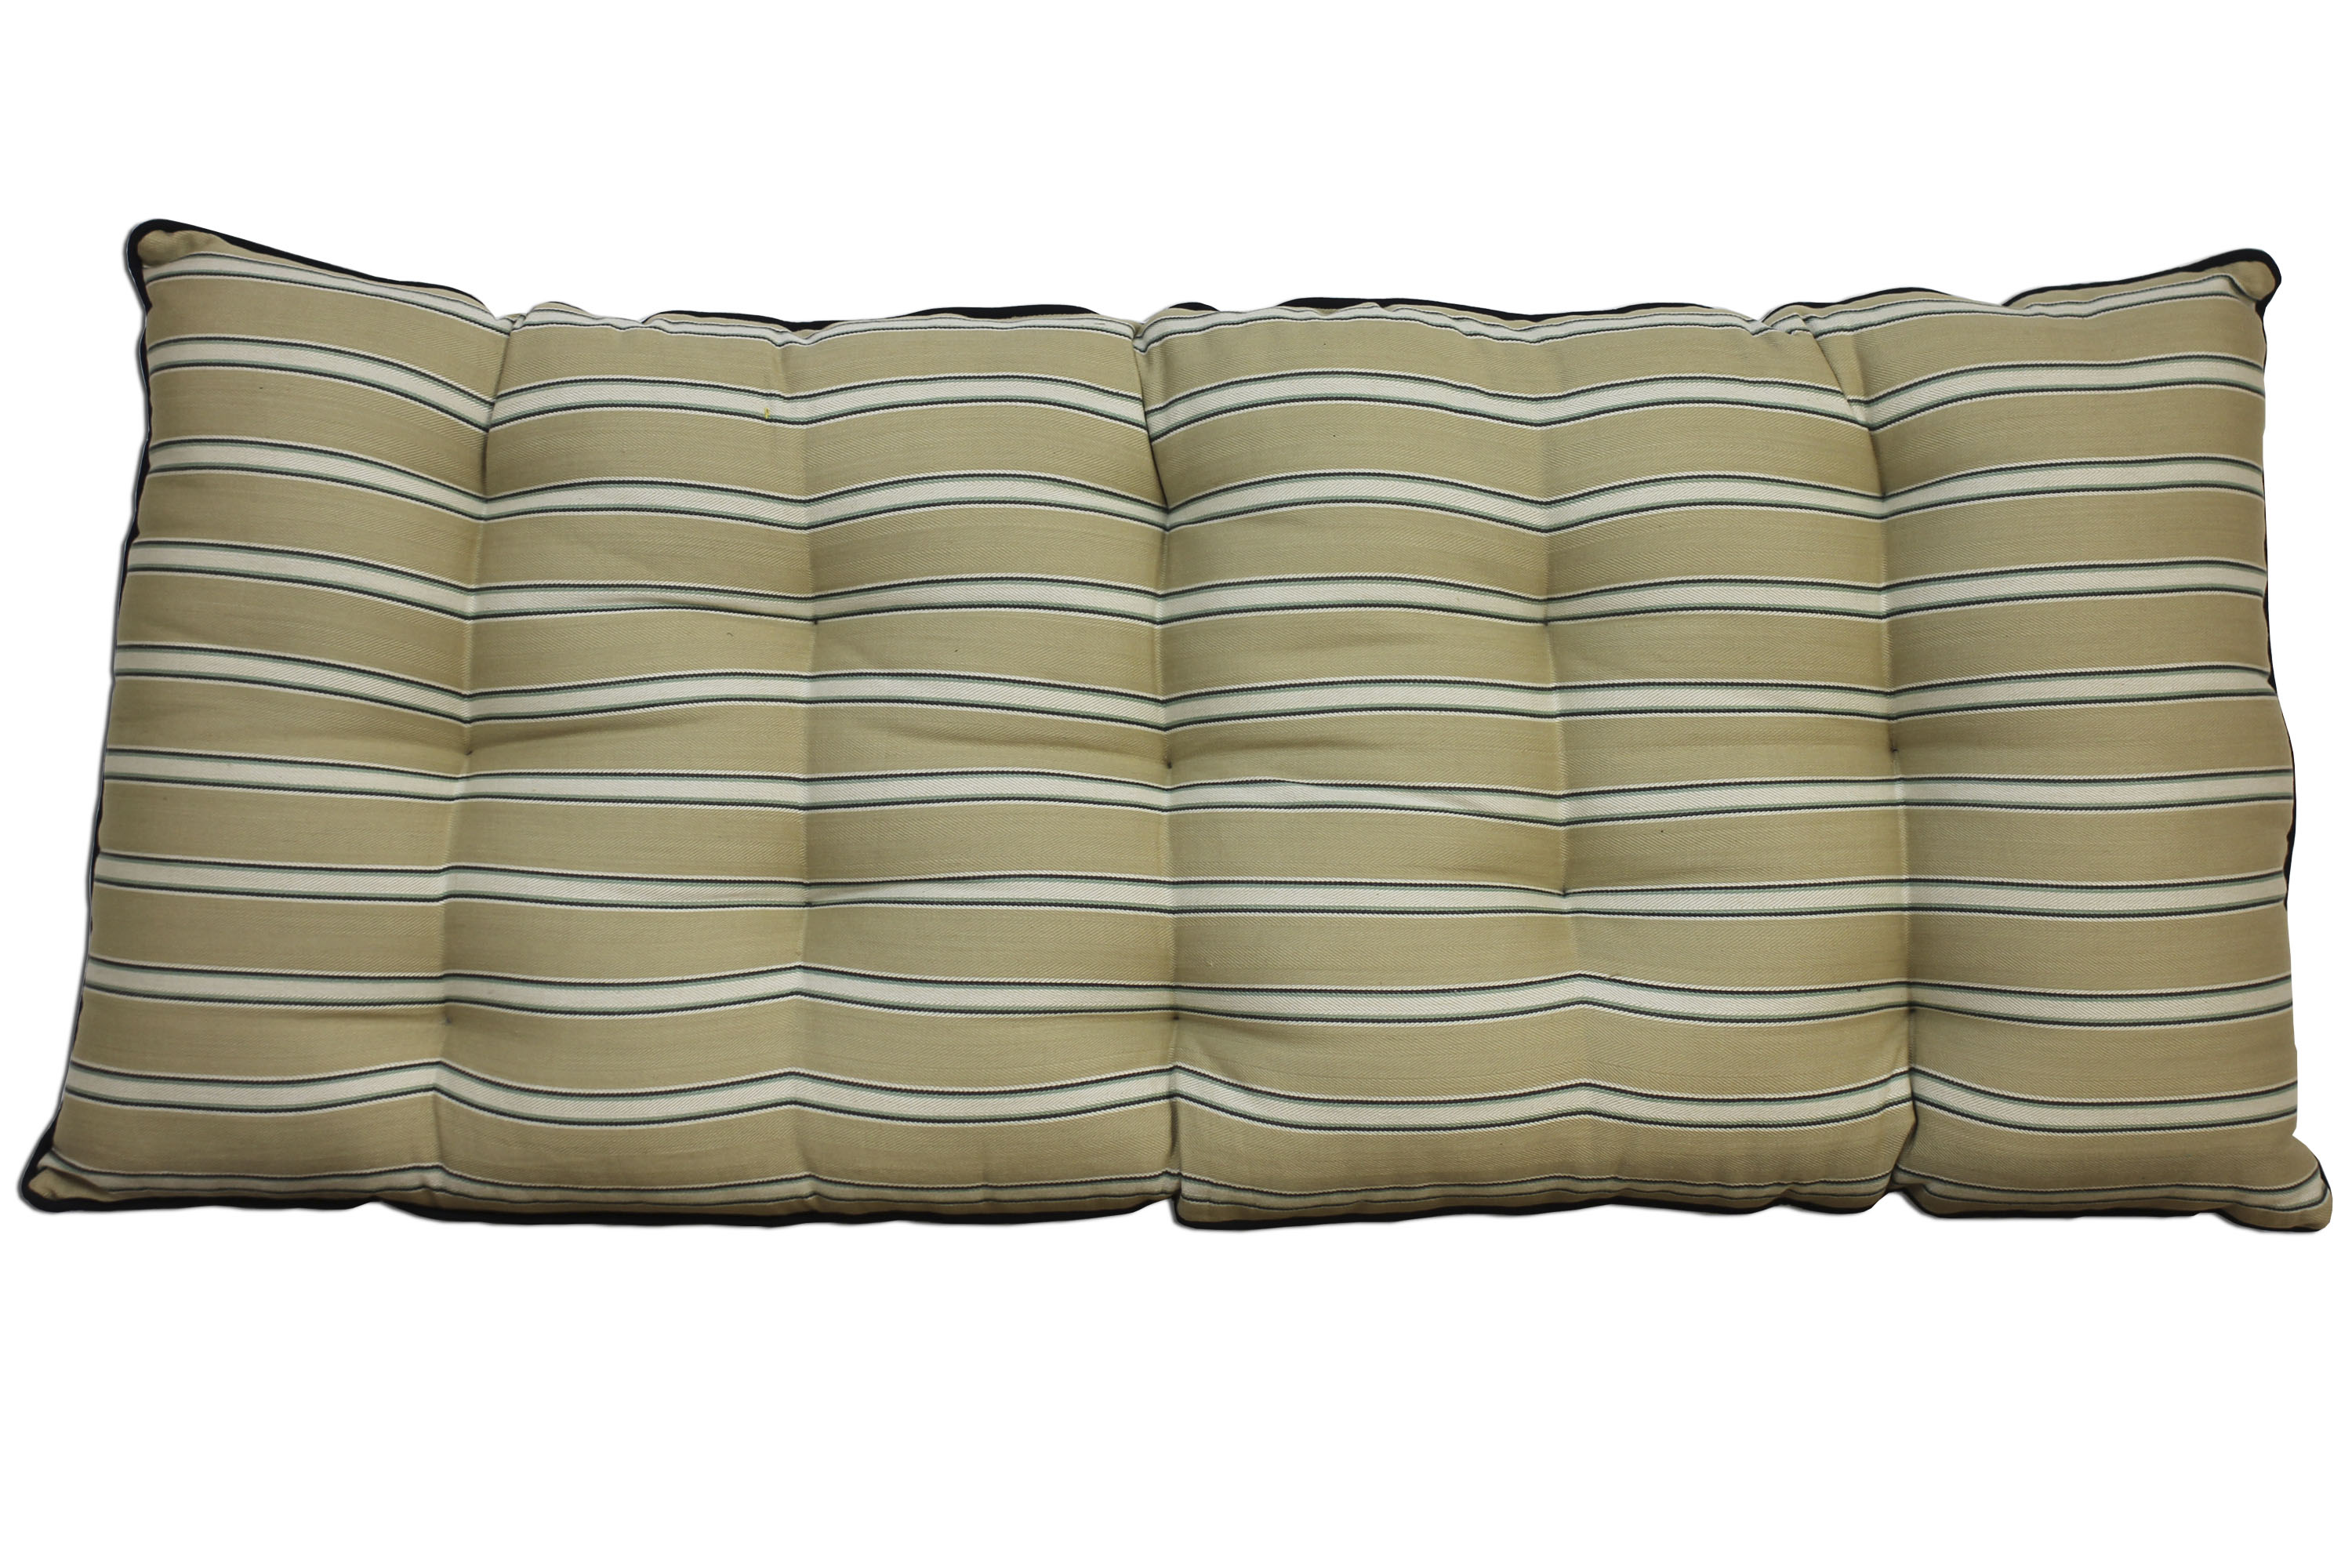 Beige Striped Bench Cushions | Long Seat Cushions Beige and Blue Stripes